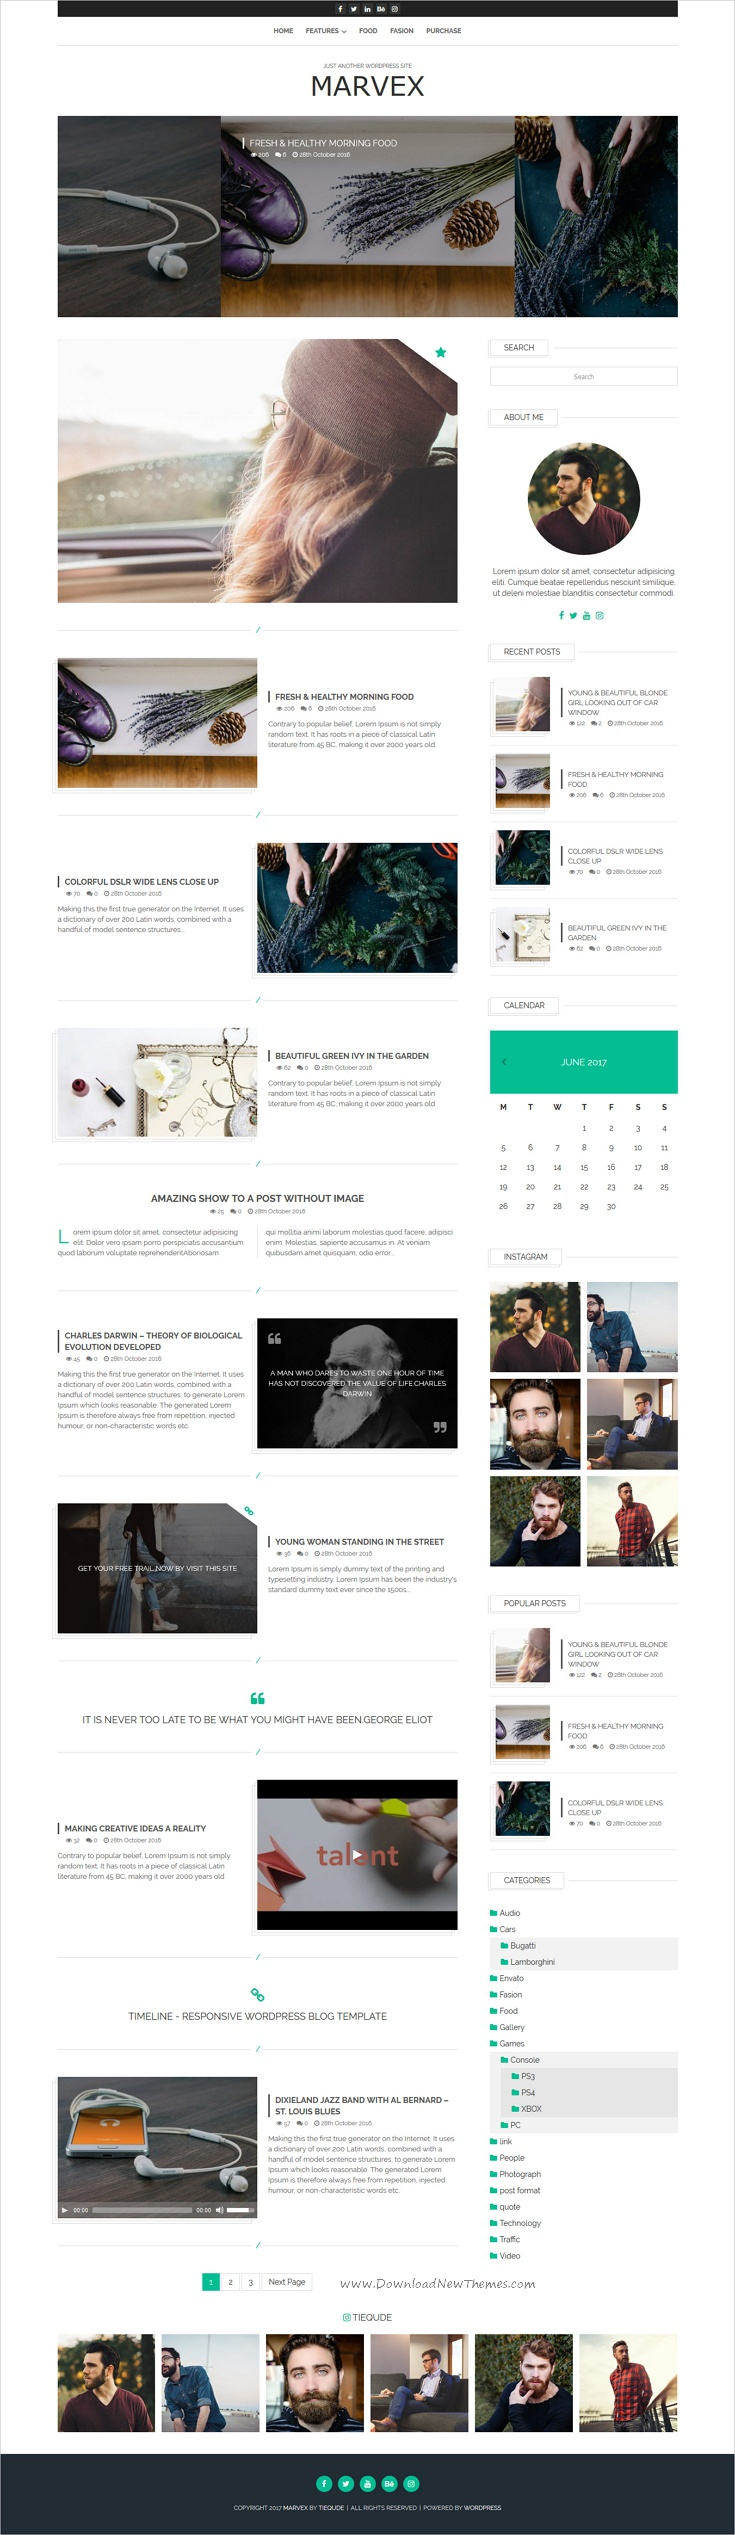 Marvex is clean and modern design responsive #WordPress #blog theme for creative #writer and bloggers website download now➩ https://themeforest.net/item/marvex-responsive-wordpress-blog-theme/19625797?ref=Datasata